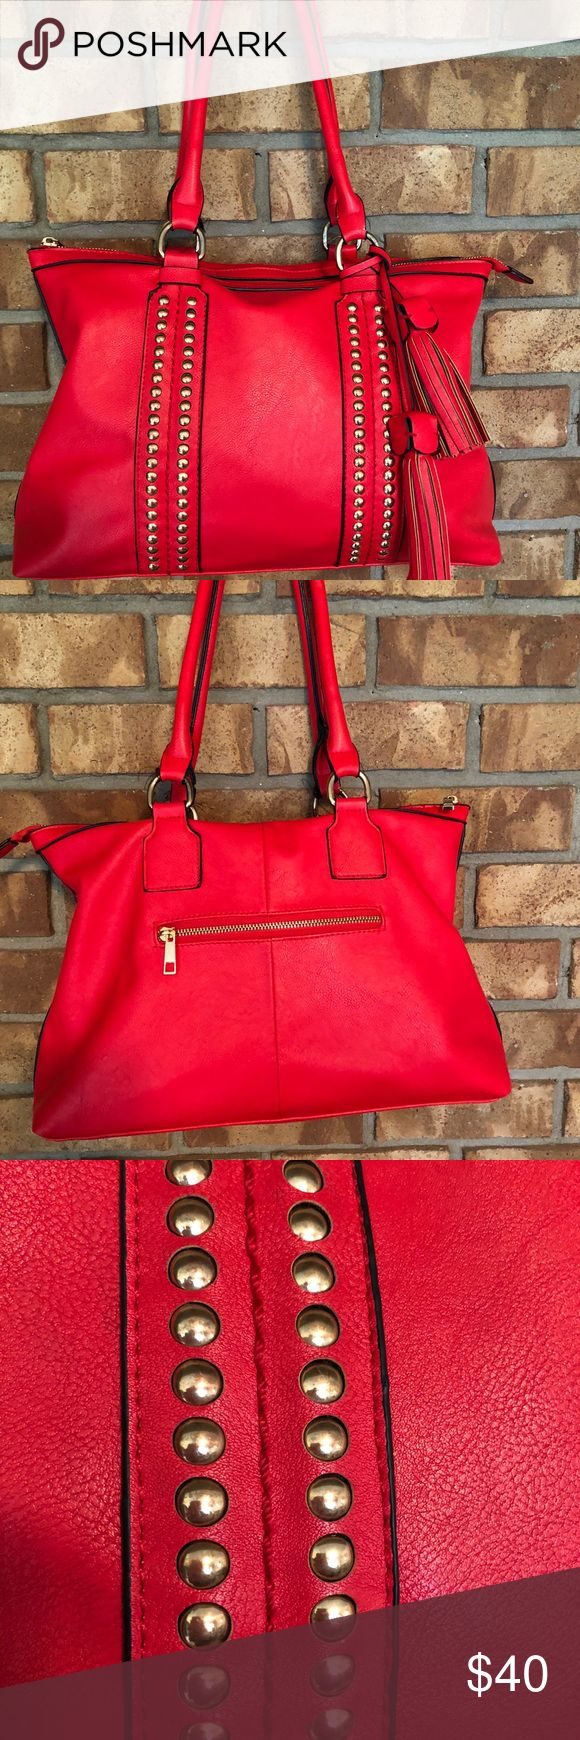 MMS oversized studded bag absolutely stunning red This bag is so pretty, no flaws inside has a couple small pen marks gold hardware MMS Design Studio Bags Totes